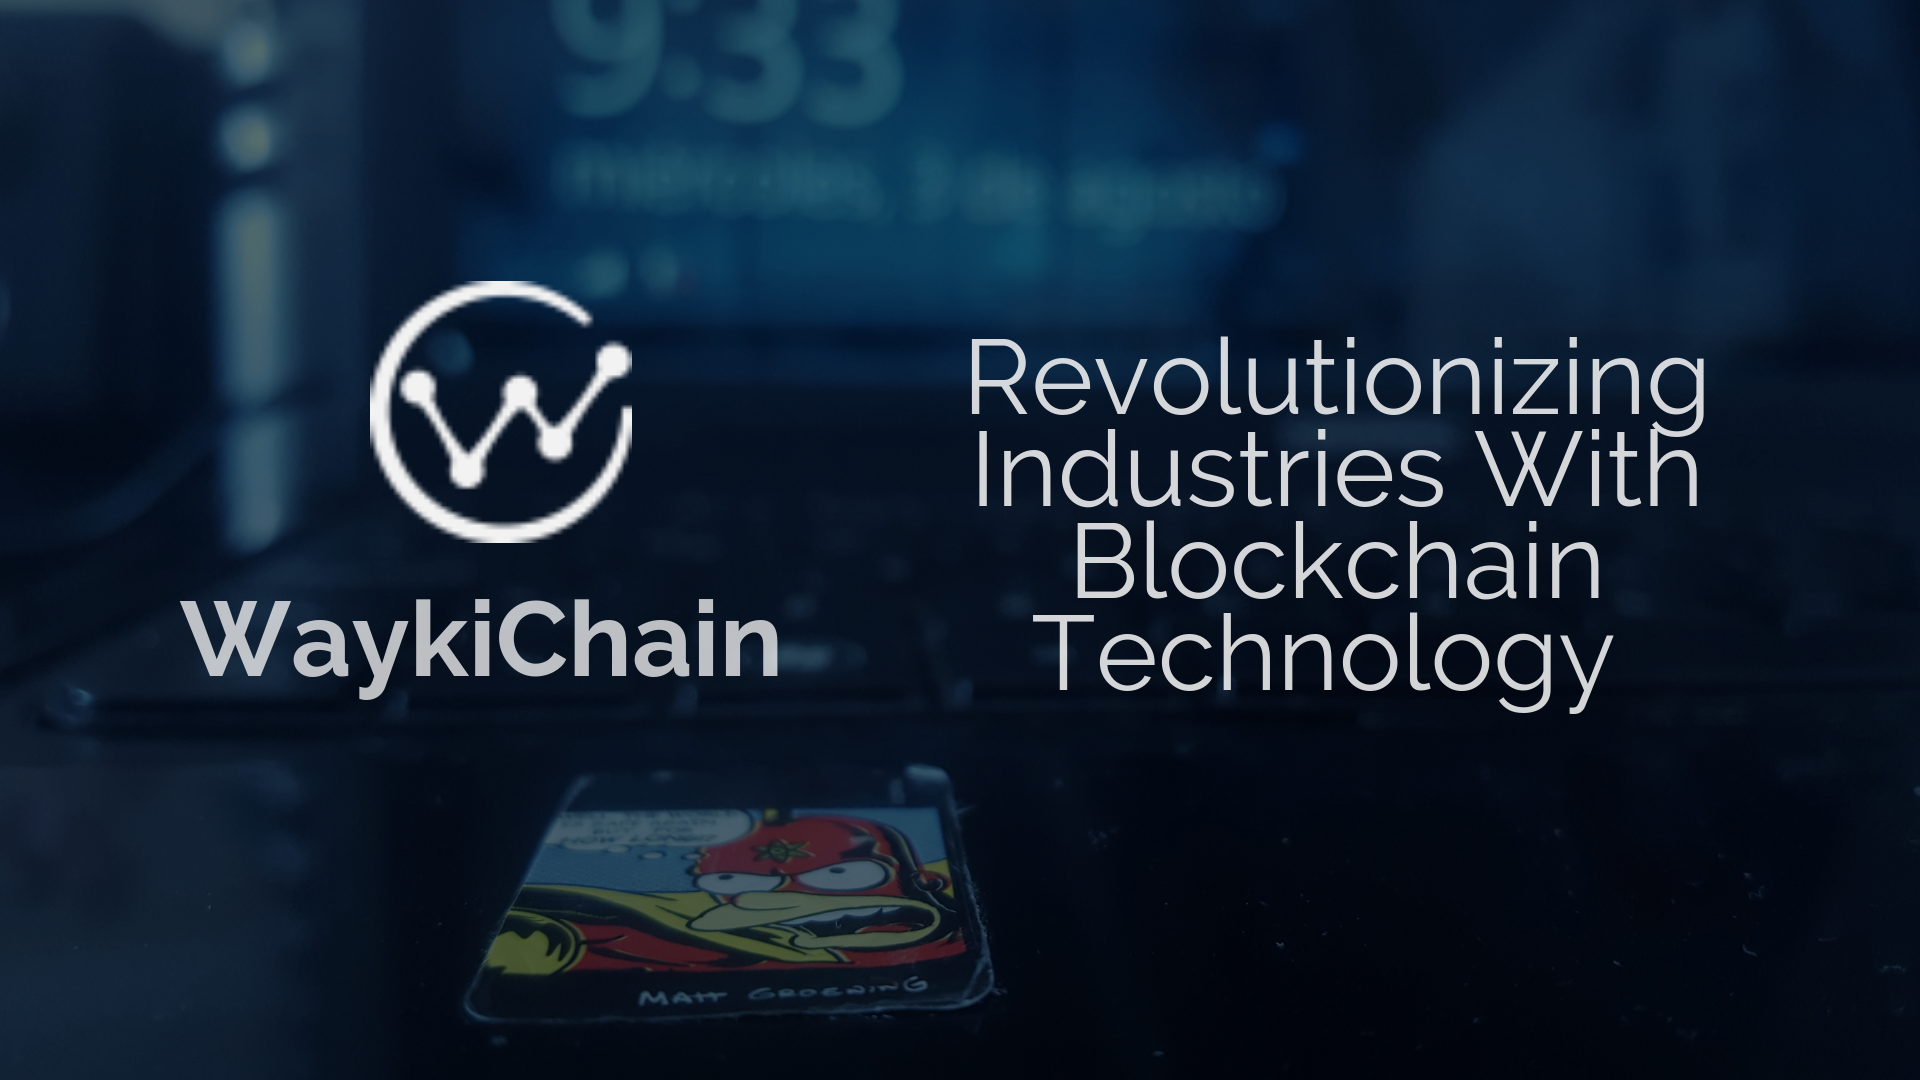 Revolutionizing Industries With Blockchain Technology